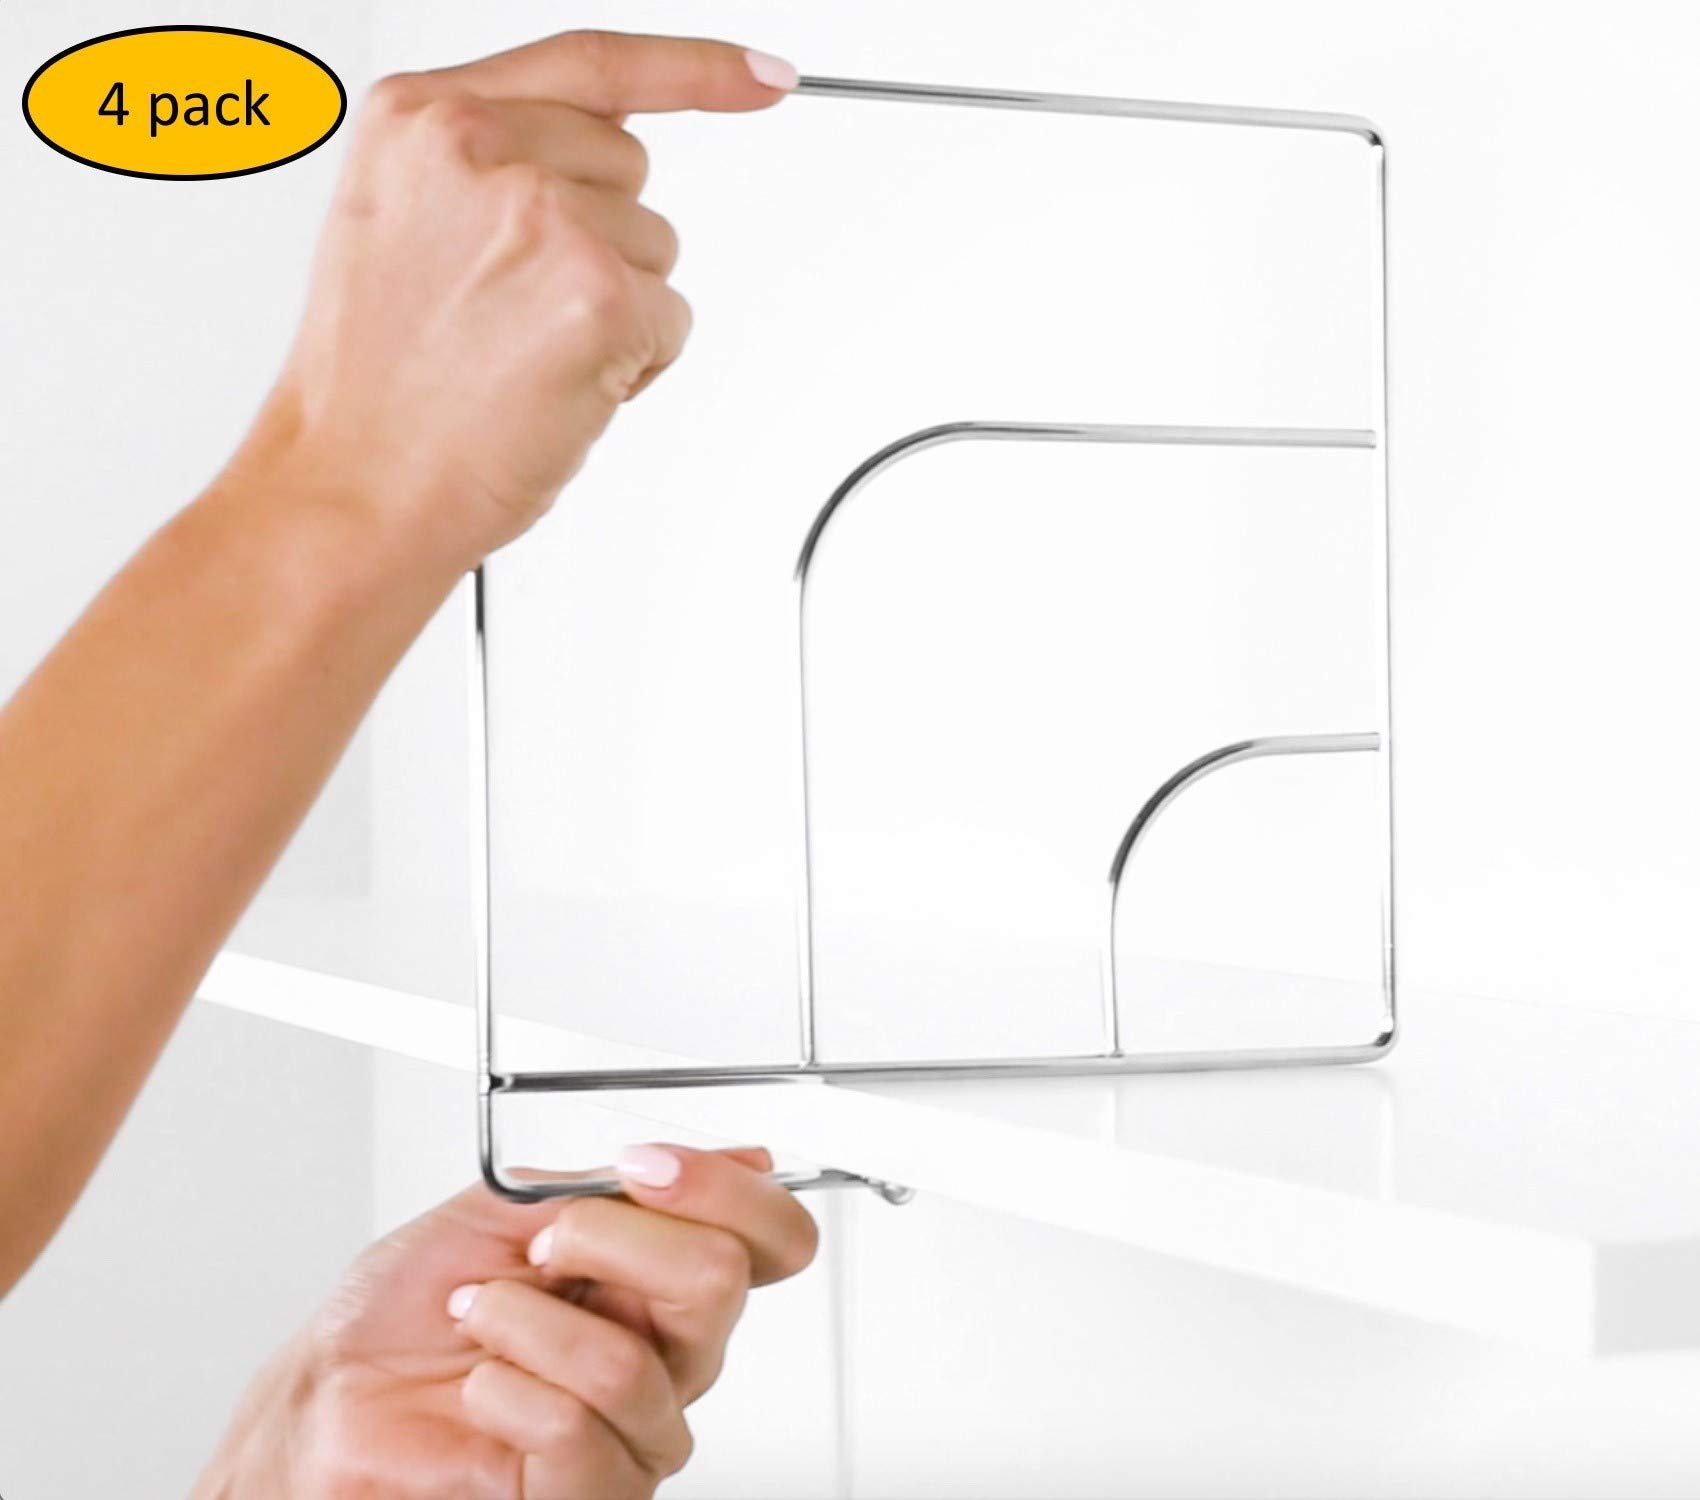 Nessentials Durable Closet Shelf Divider and Separator for Organization and Storage for Home, Kitchen, Appliances, Classrooms, Desks; Pack of 4; Pack of 6 - Simple and Sleek Metal Design (4) by N Essentials